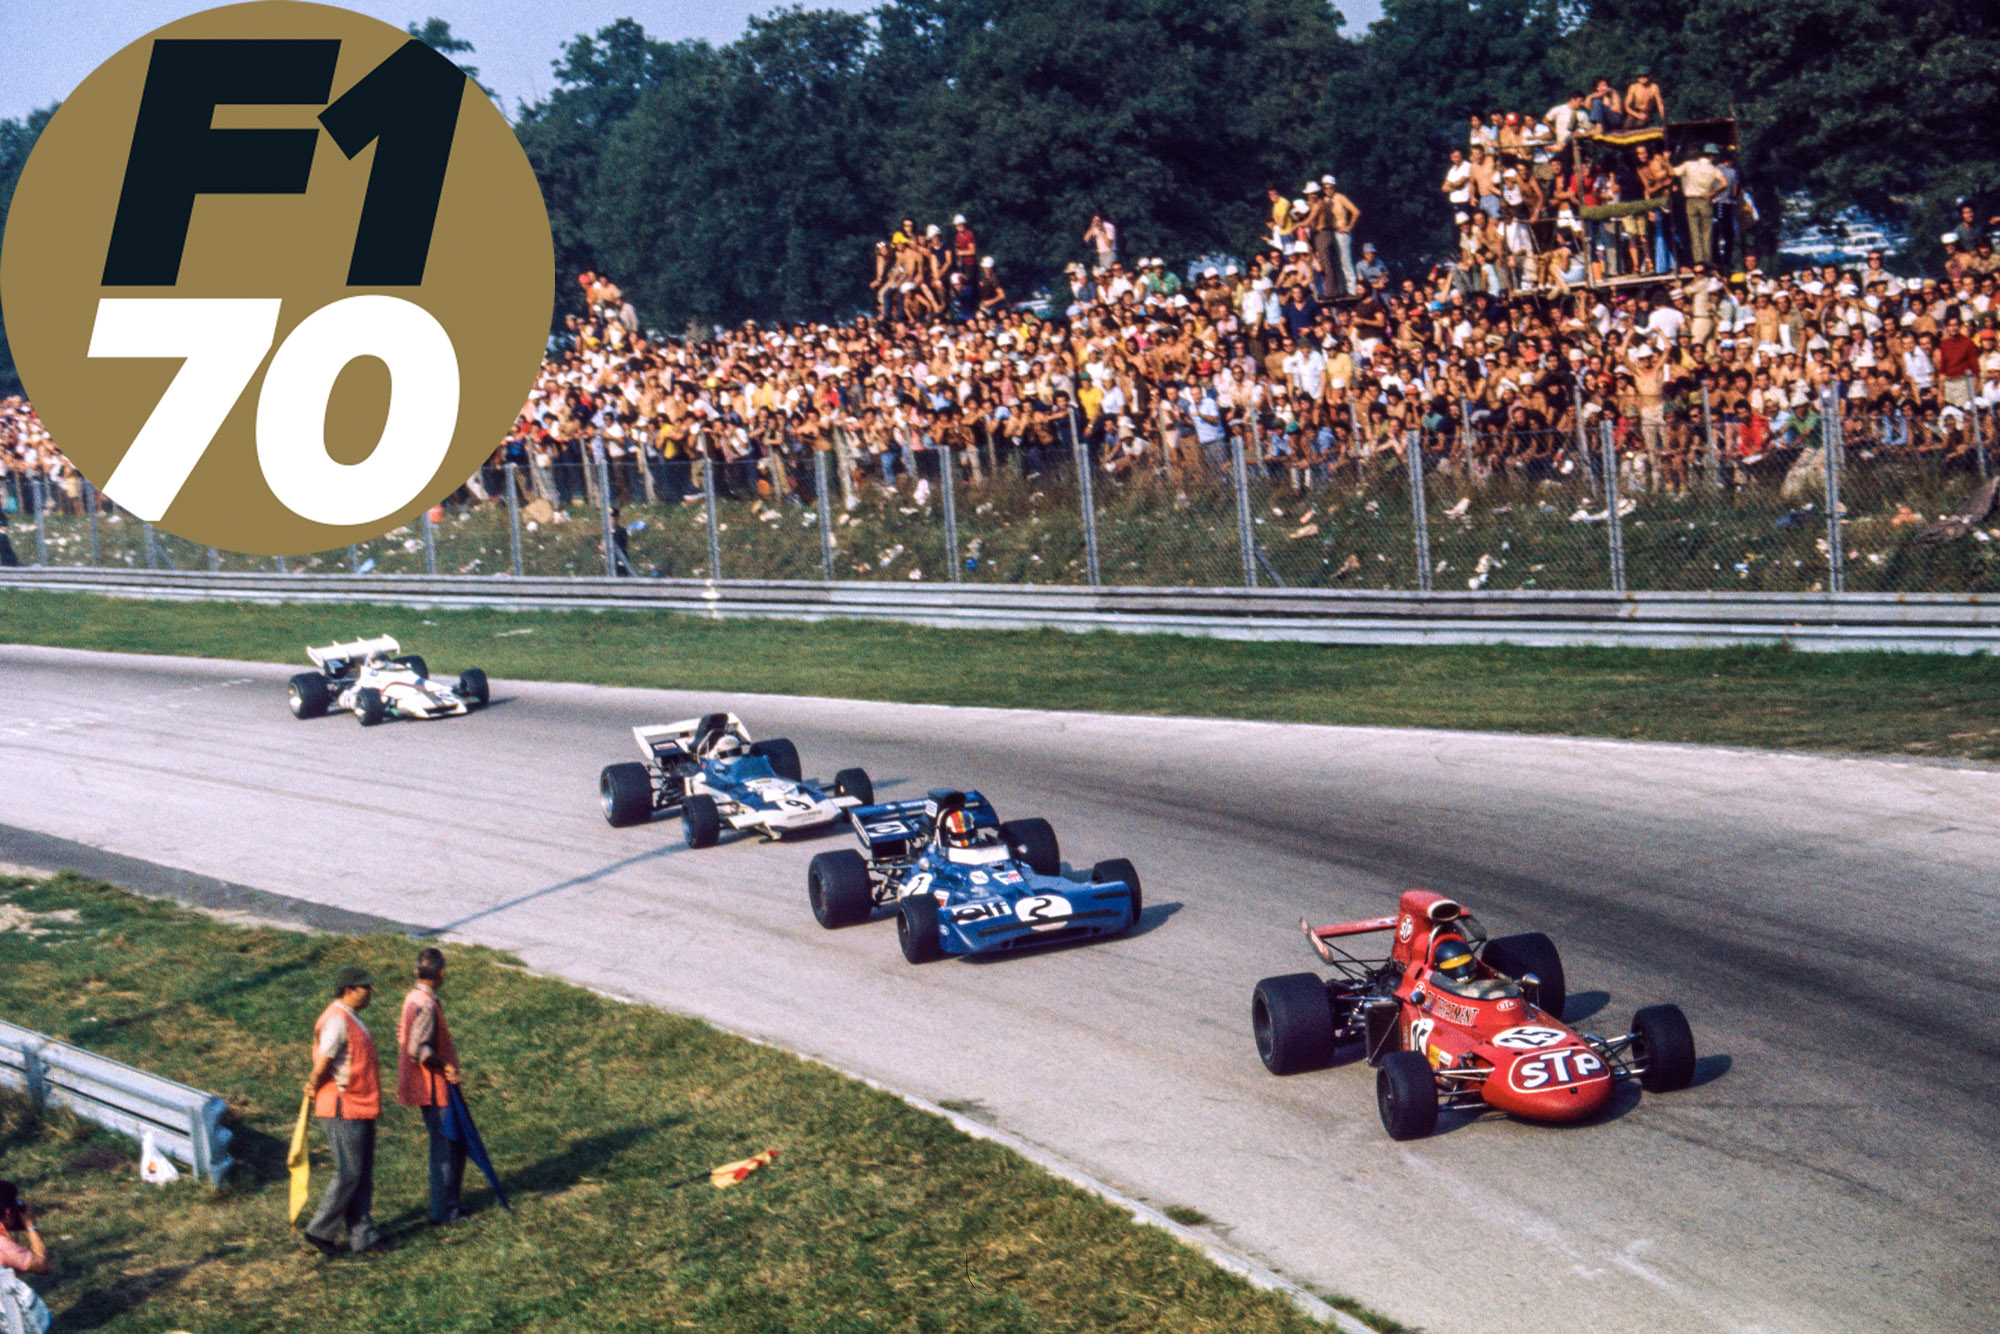 Ronnie Peterson's March leads Francois Cevert's Tyrrell and Mike Hailwood's Surtees in the 1971 F1 Italian Grand Prix at Monza